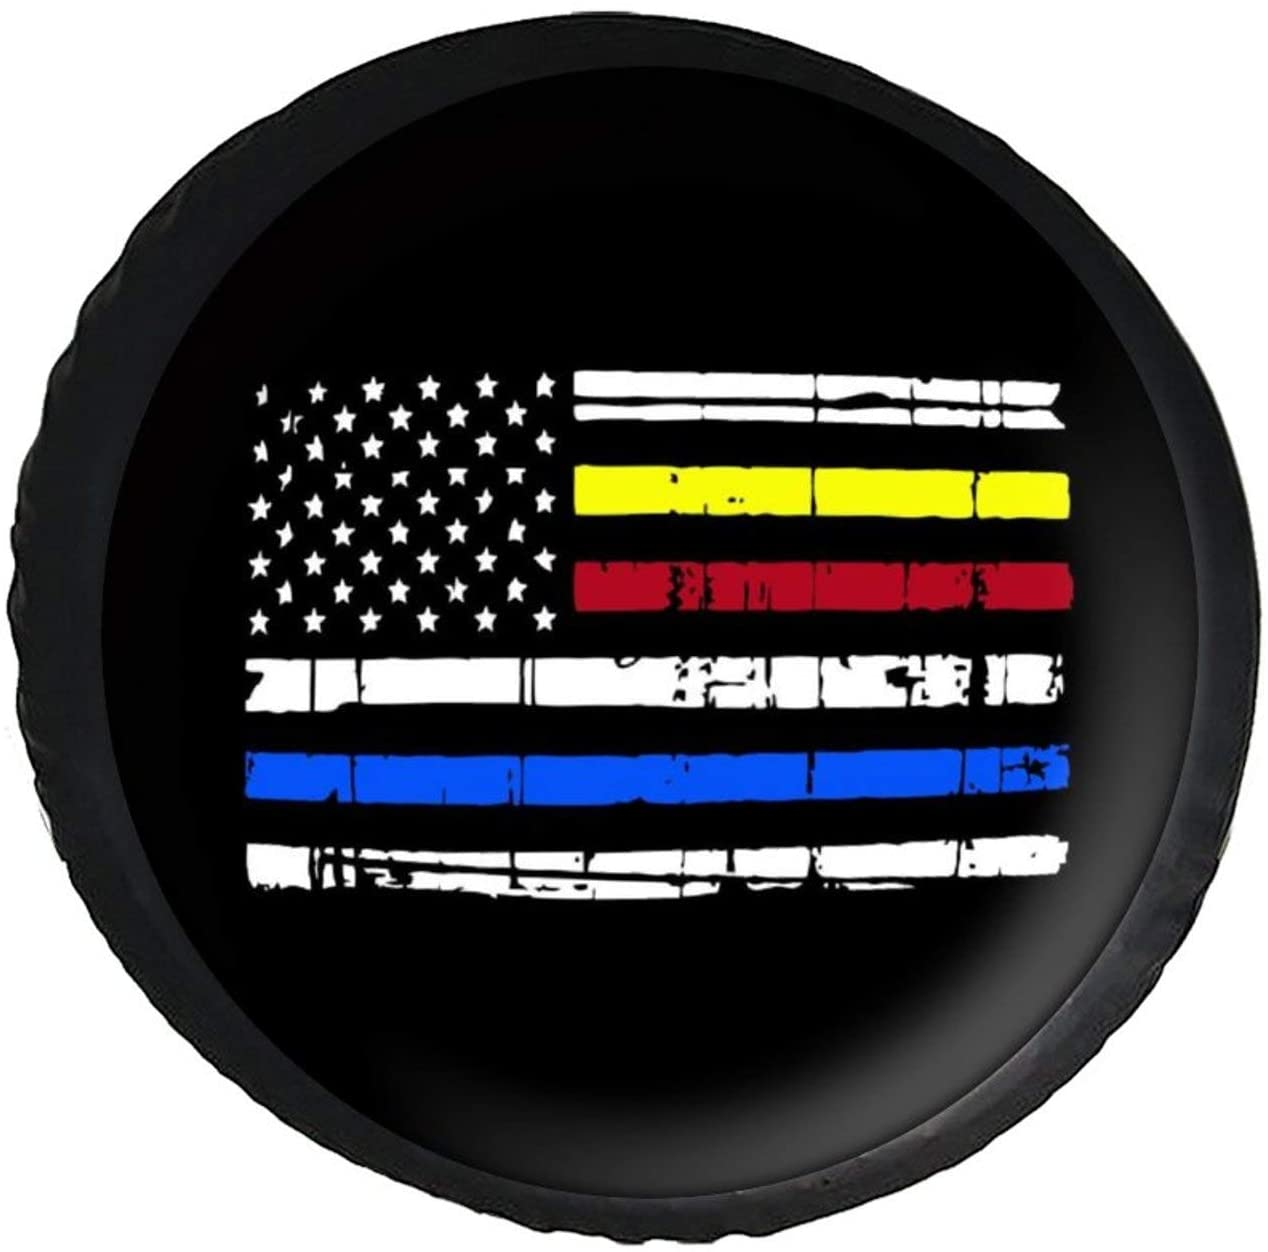 Spare Tire Cover Distressed Dispatch, Police, Fire Department Universal Leather Spare Wheel Cover American Flag Thin Lines Sunproof Tire Covers for Je_ep Trailer RV SUV Truck Camper Travel and Many Ve